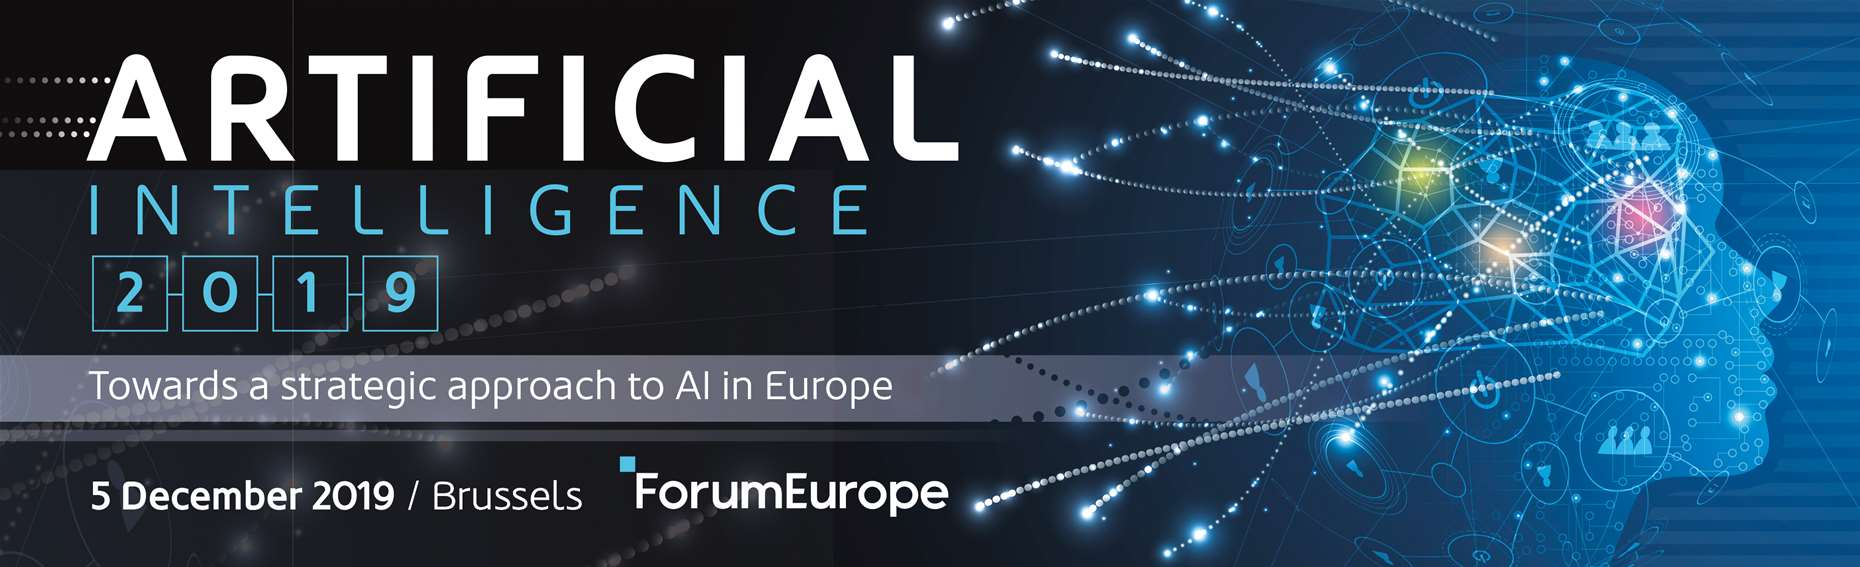 Forum Europe Artificial Intelligence 2019